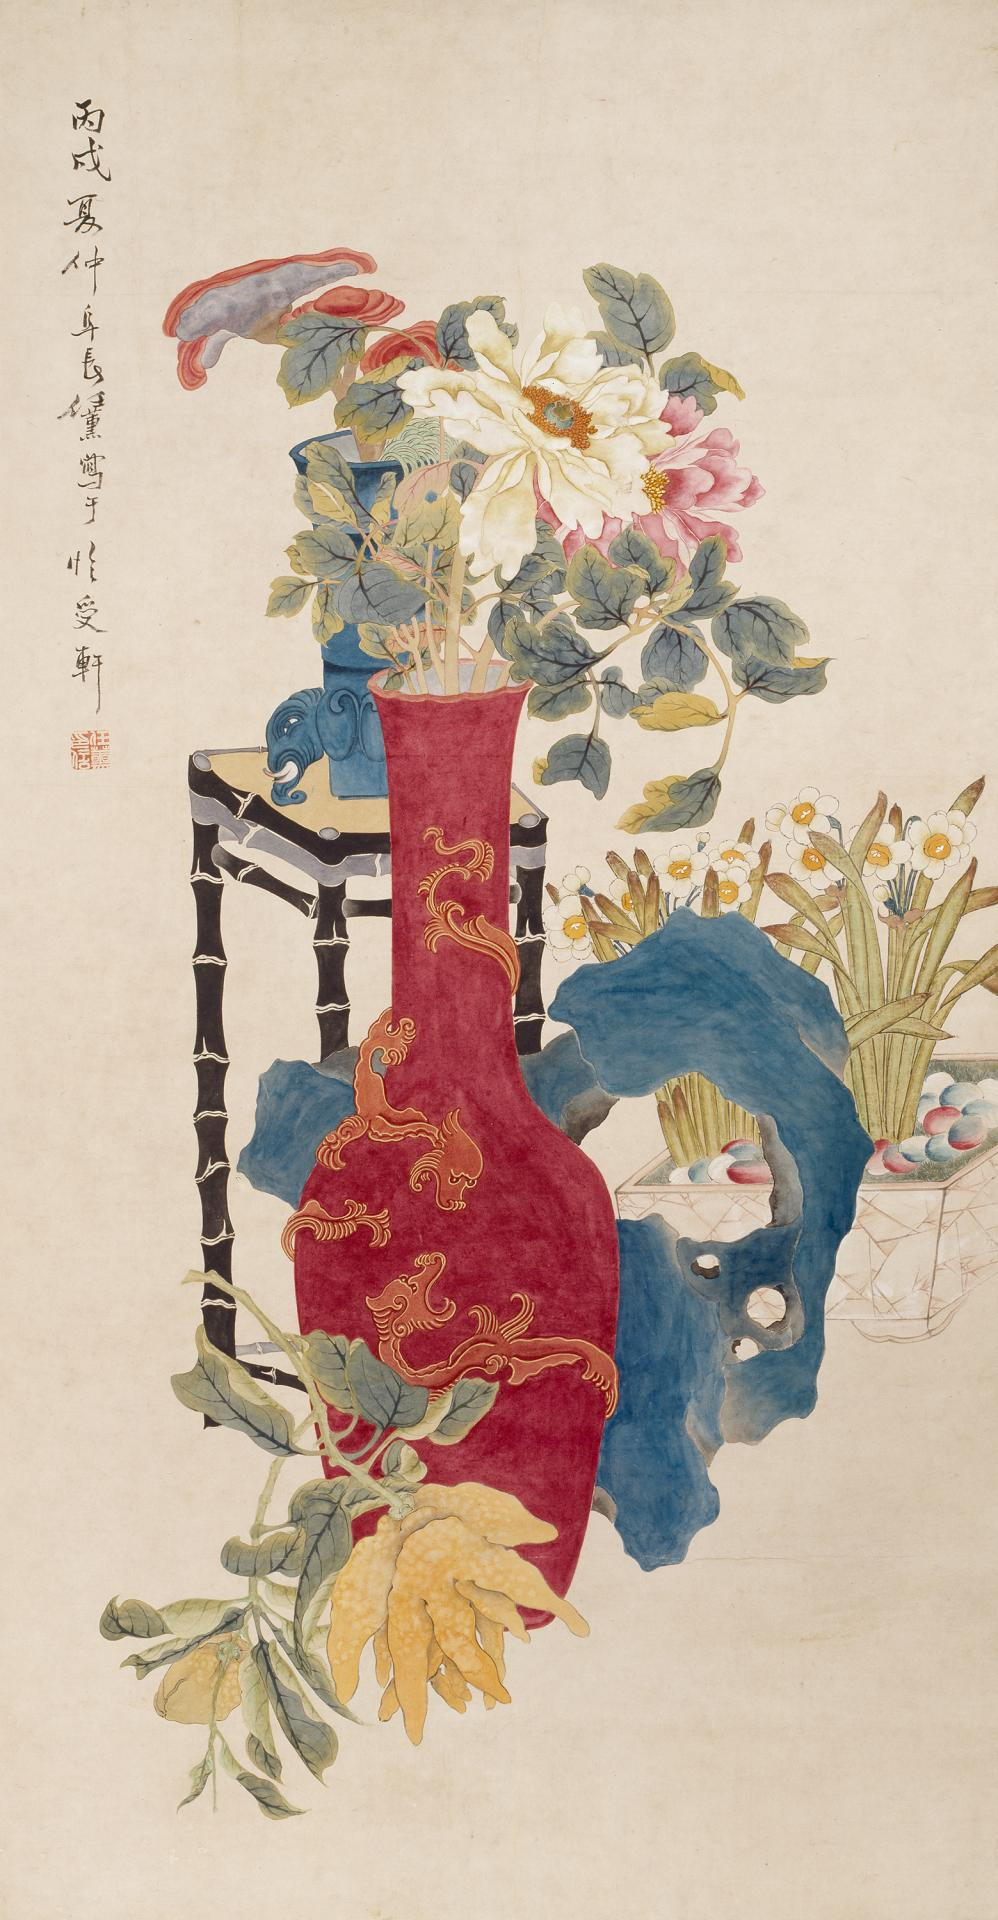 Auspicious Meanings And Lucky Symbols In Chinese Art Ngv